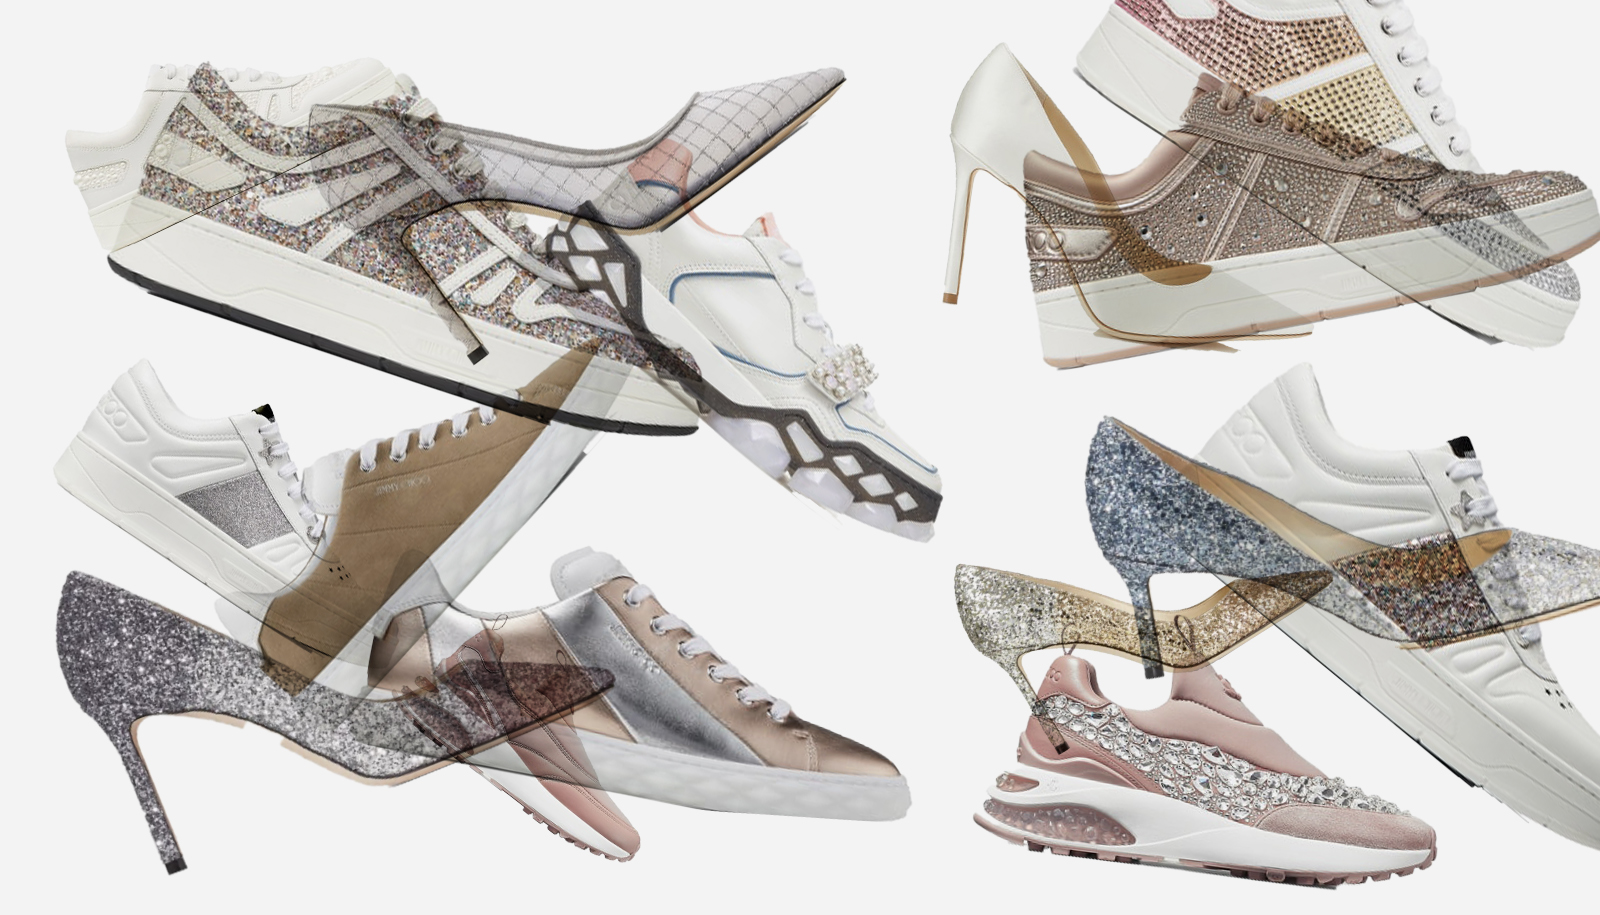 Who is Jimmy Choo and are Jimmy Choos comfortable?